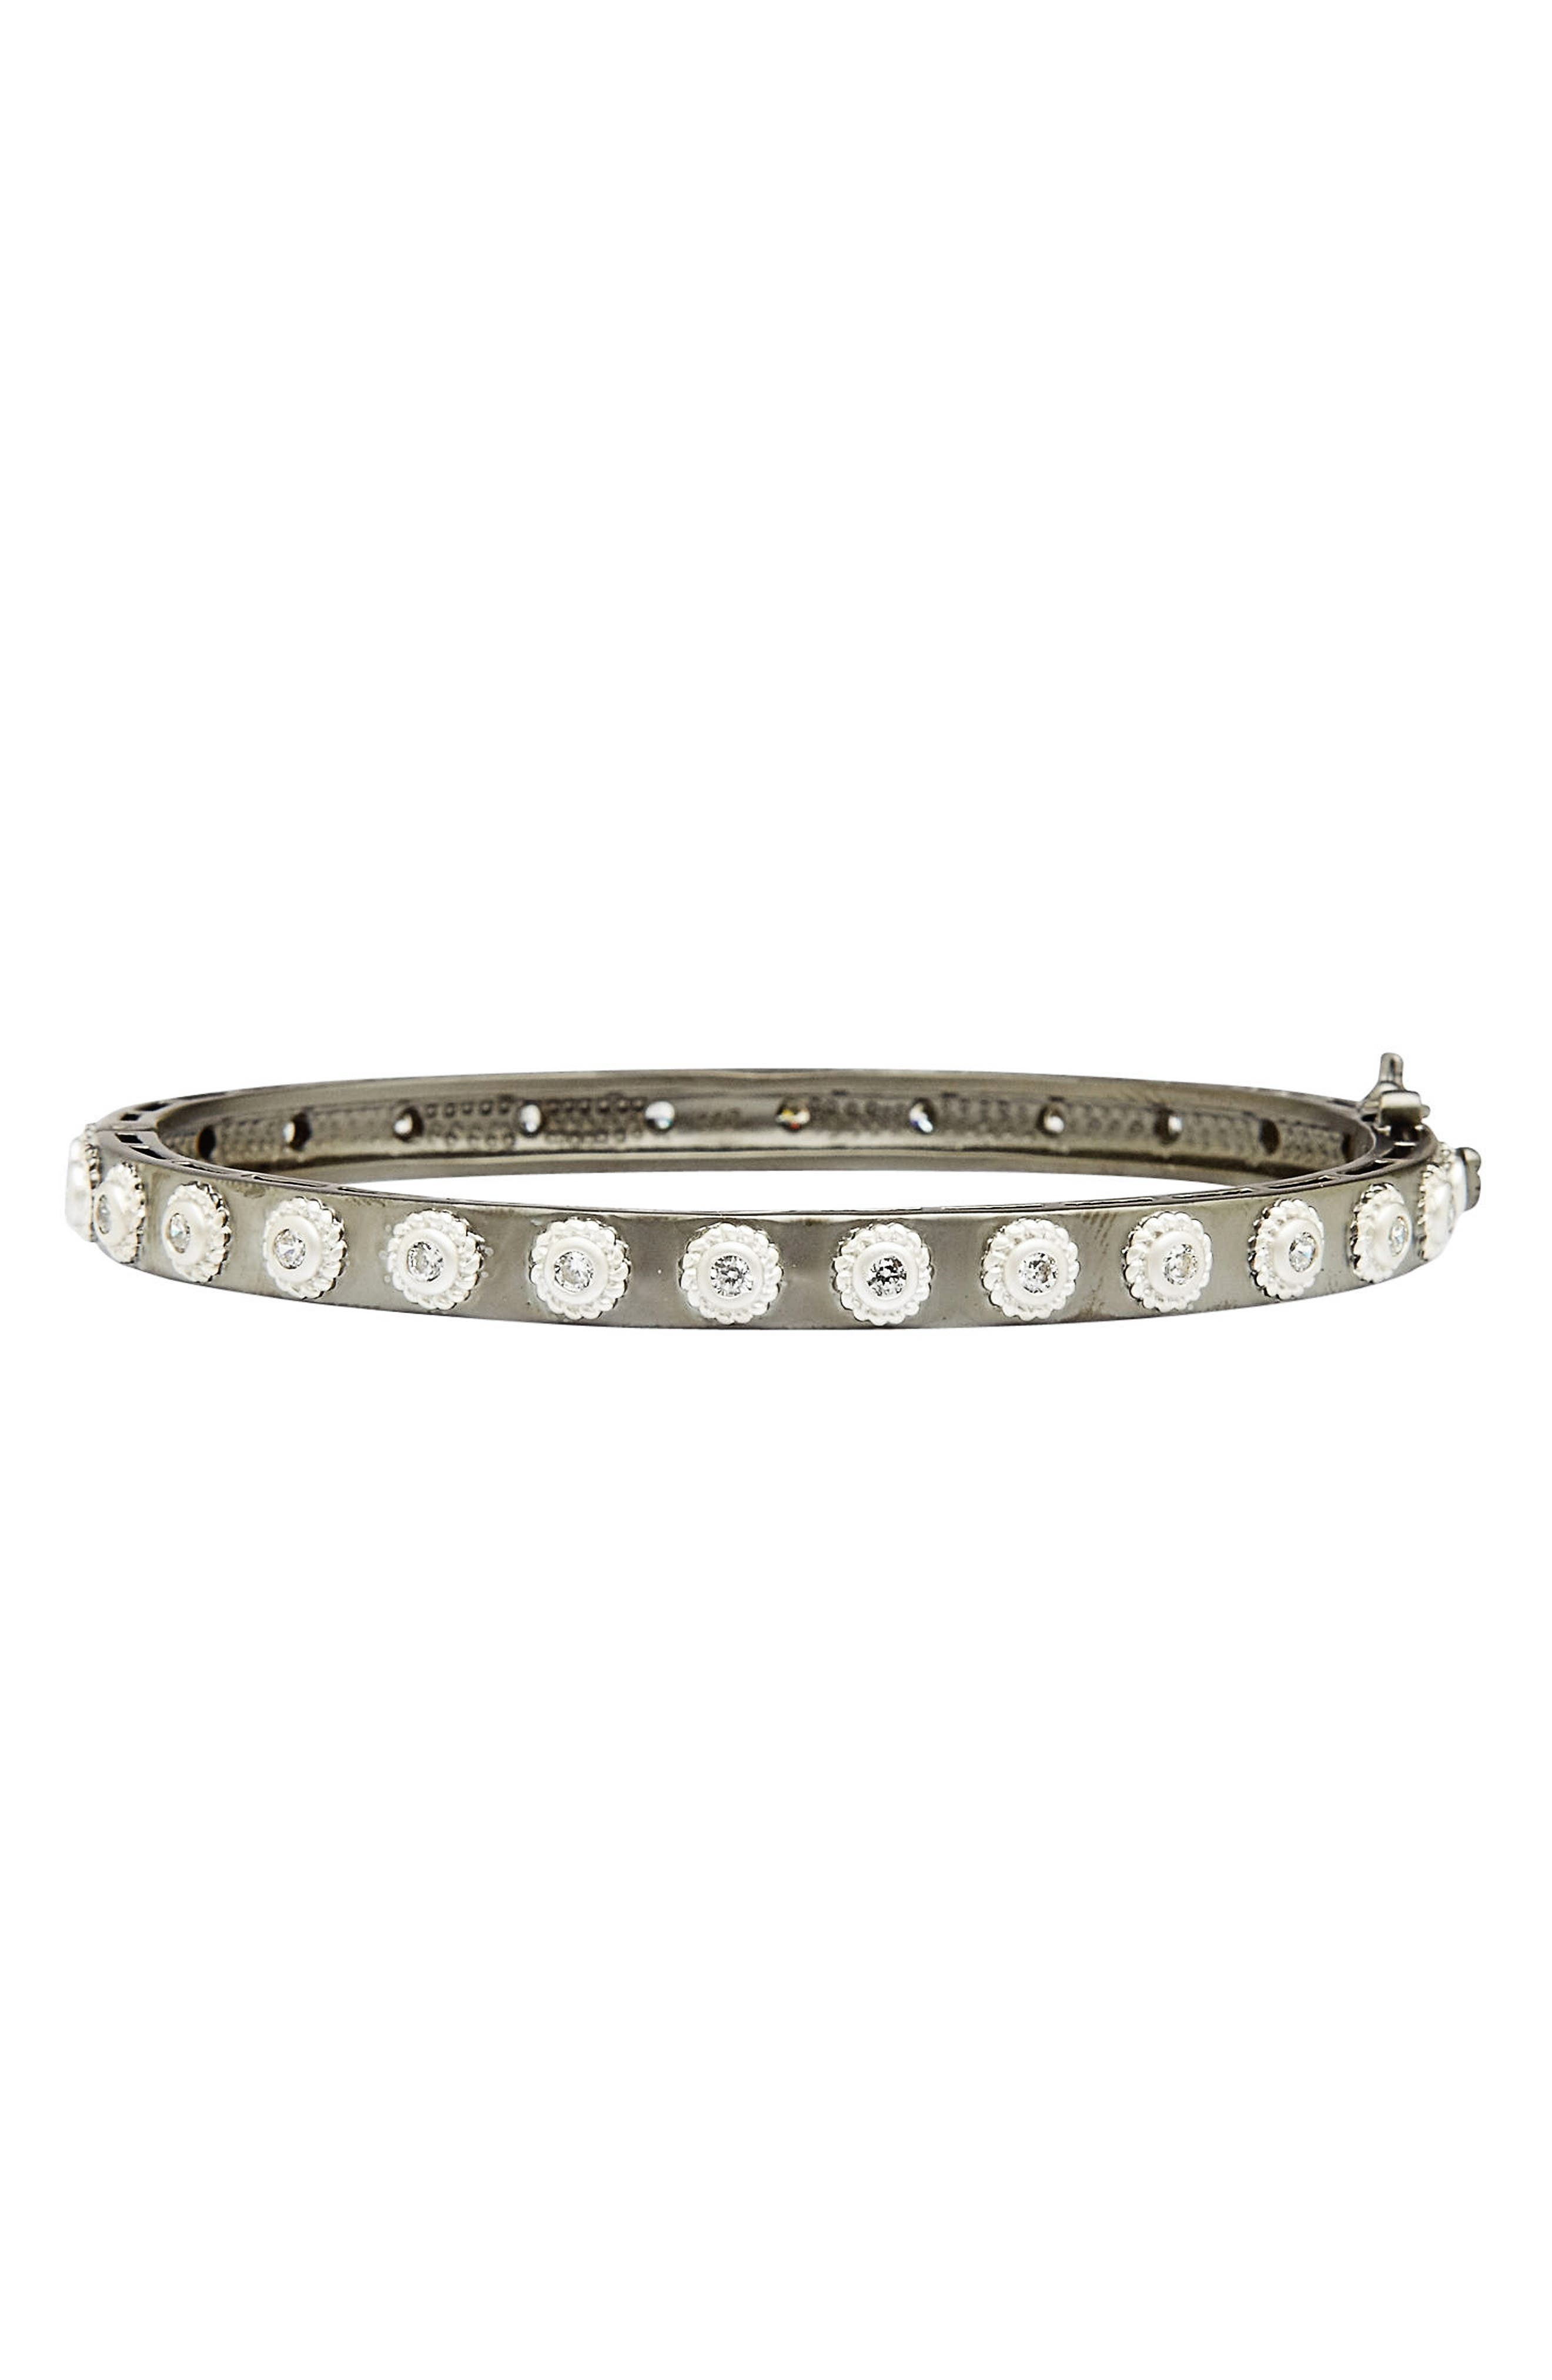 Studded Eternity Hinge Bangle,                             Main thumbnail 1, color,                             040